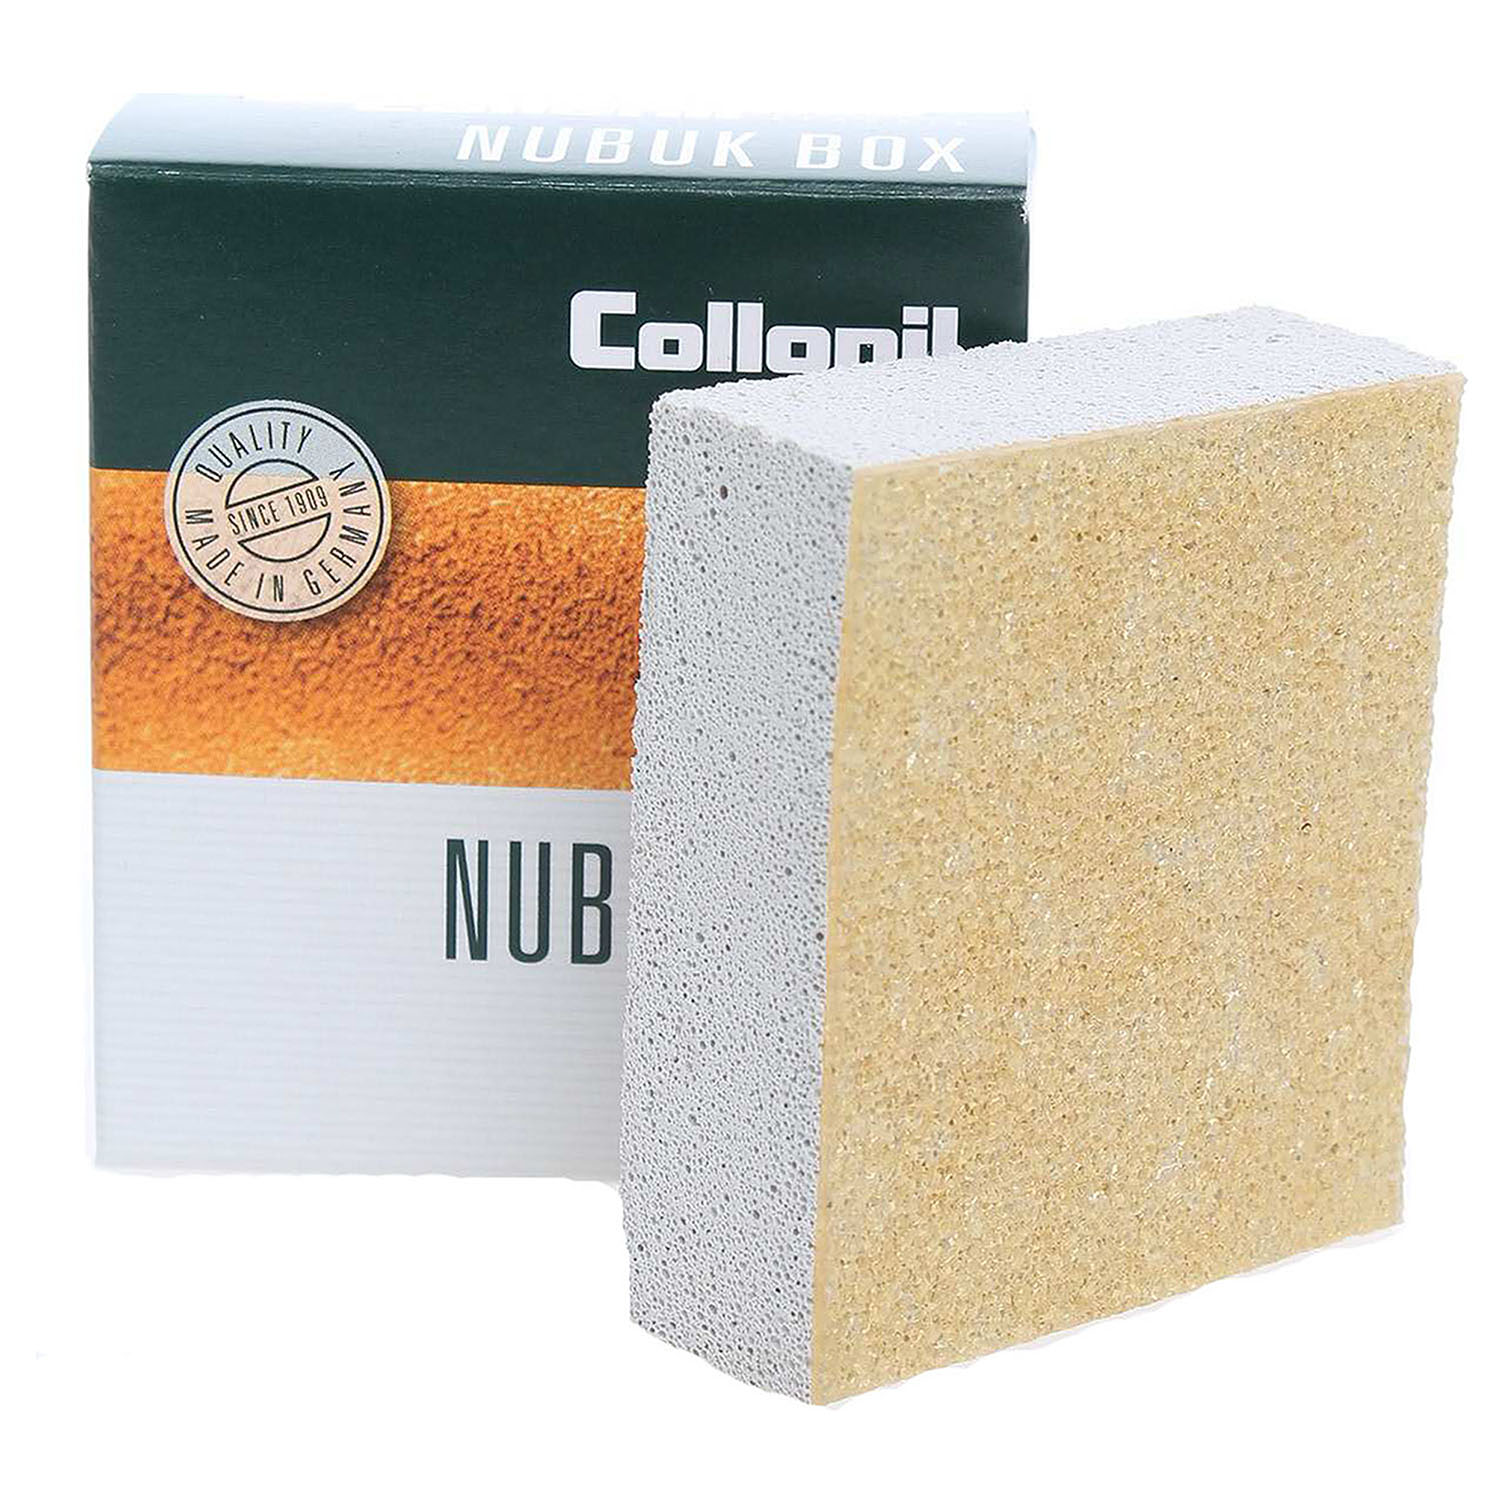 detail Collonil Nubuk Box